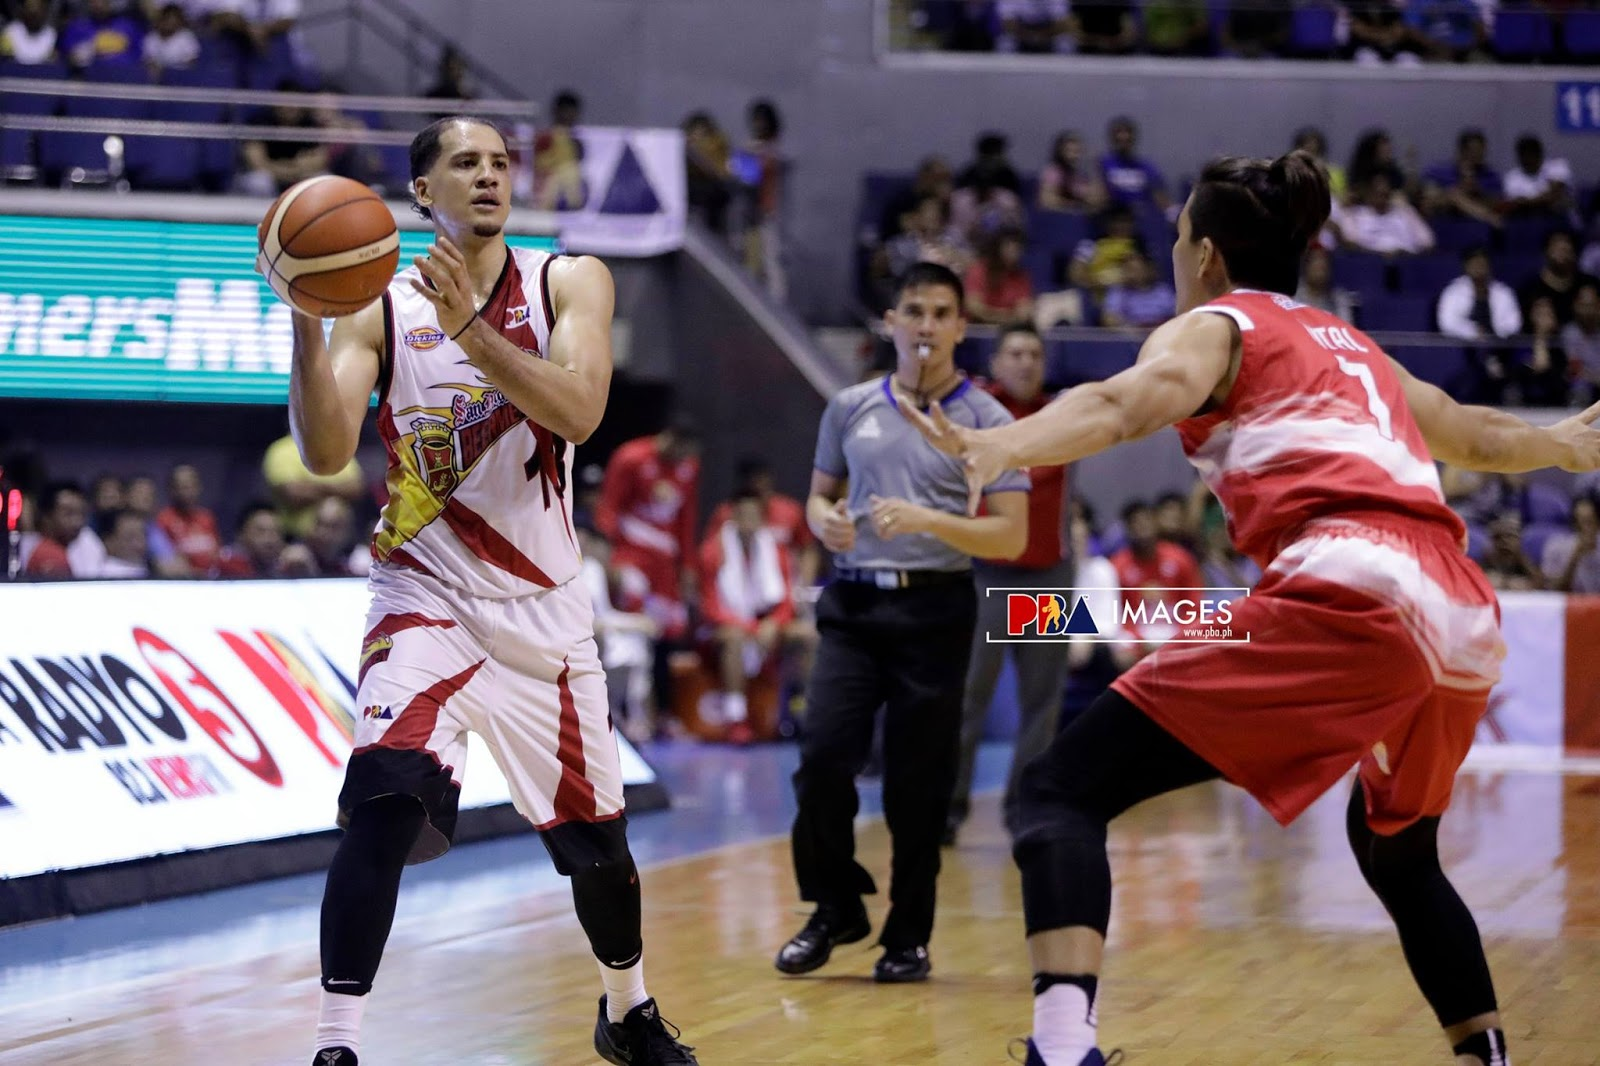 Marcio Lassiter led his team to the semis